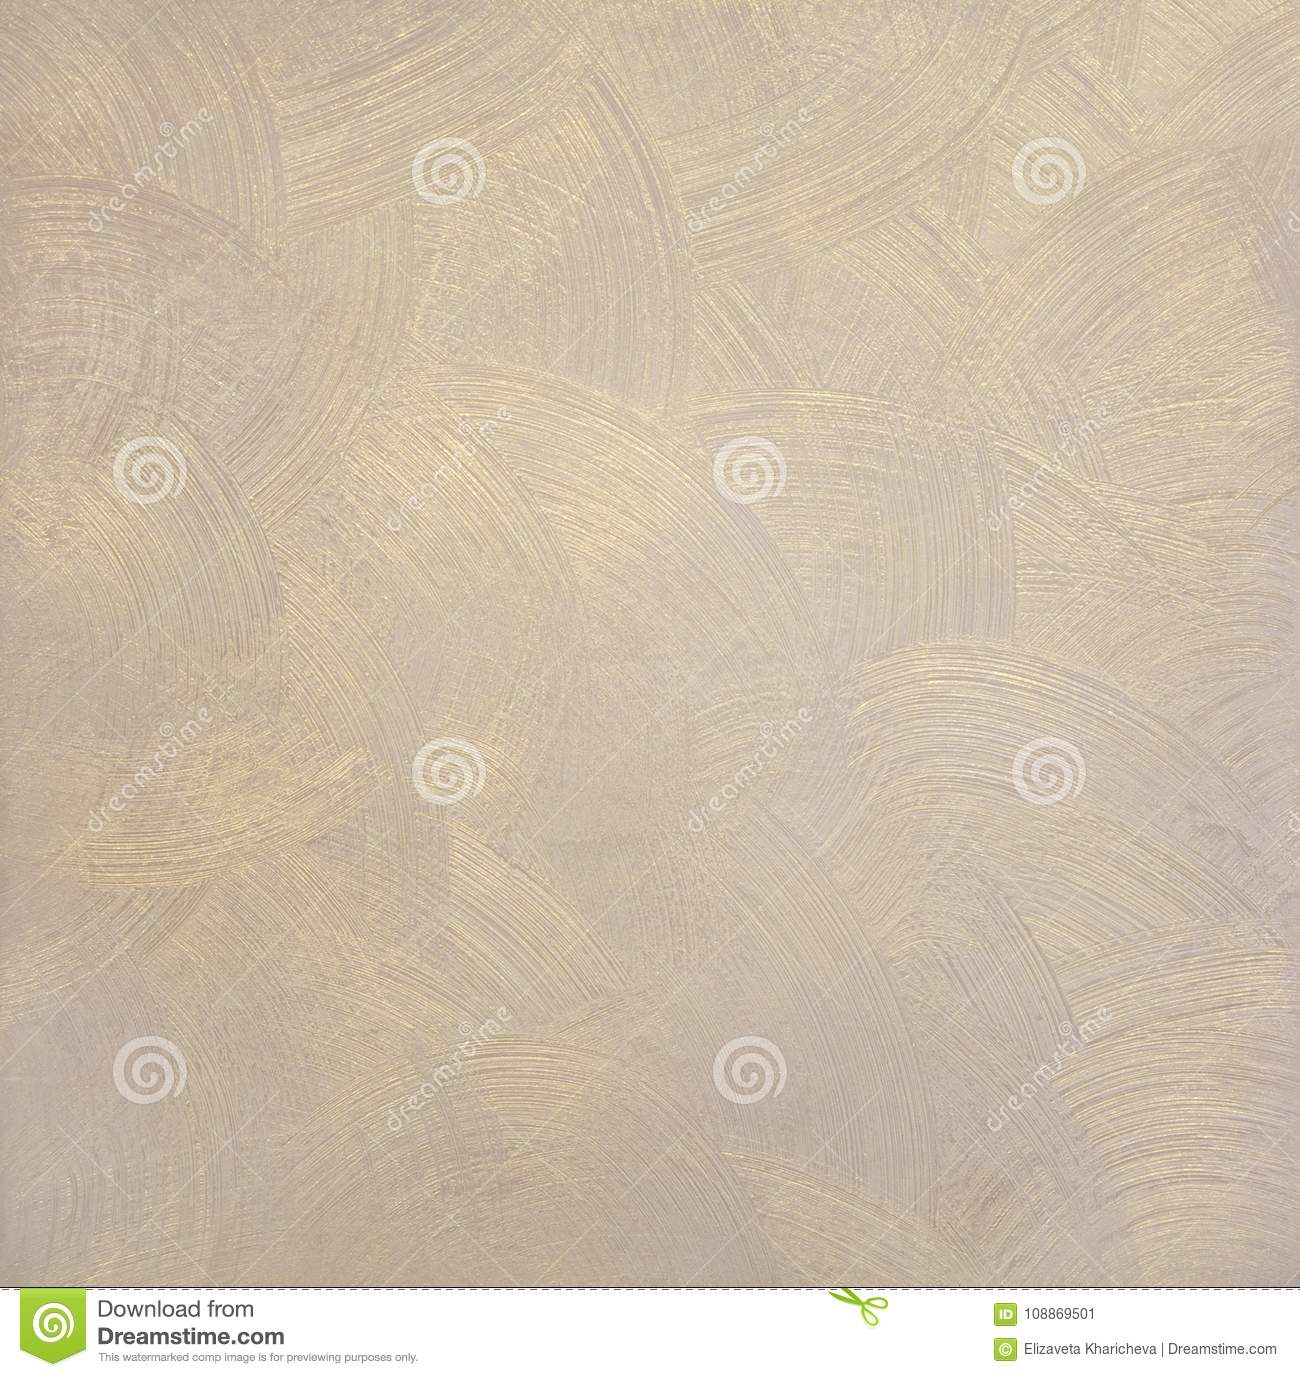 Pearlescent Texture Of Paint With Round Divorces   Beige Color With Gold.  Interior Design. Decorative Coating For Walls